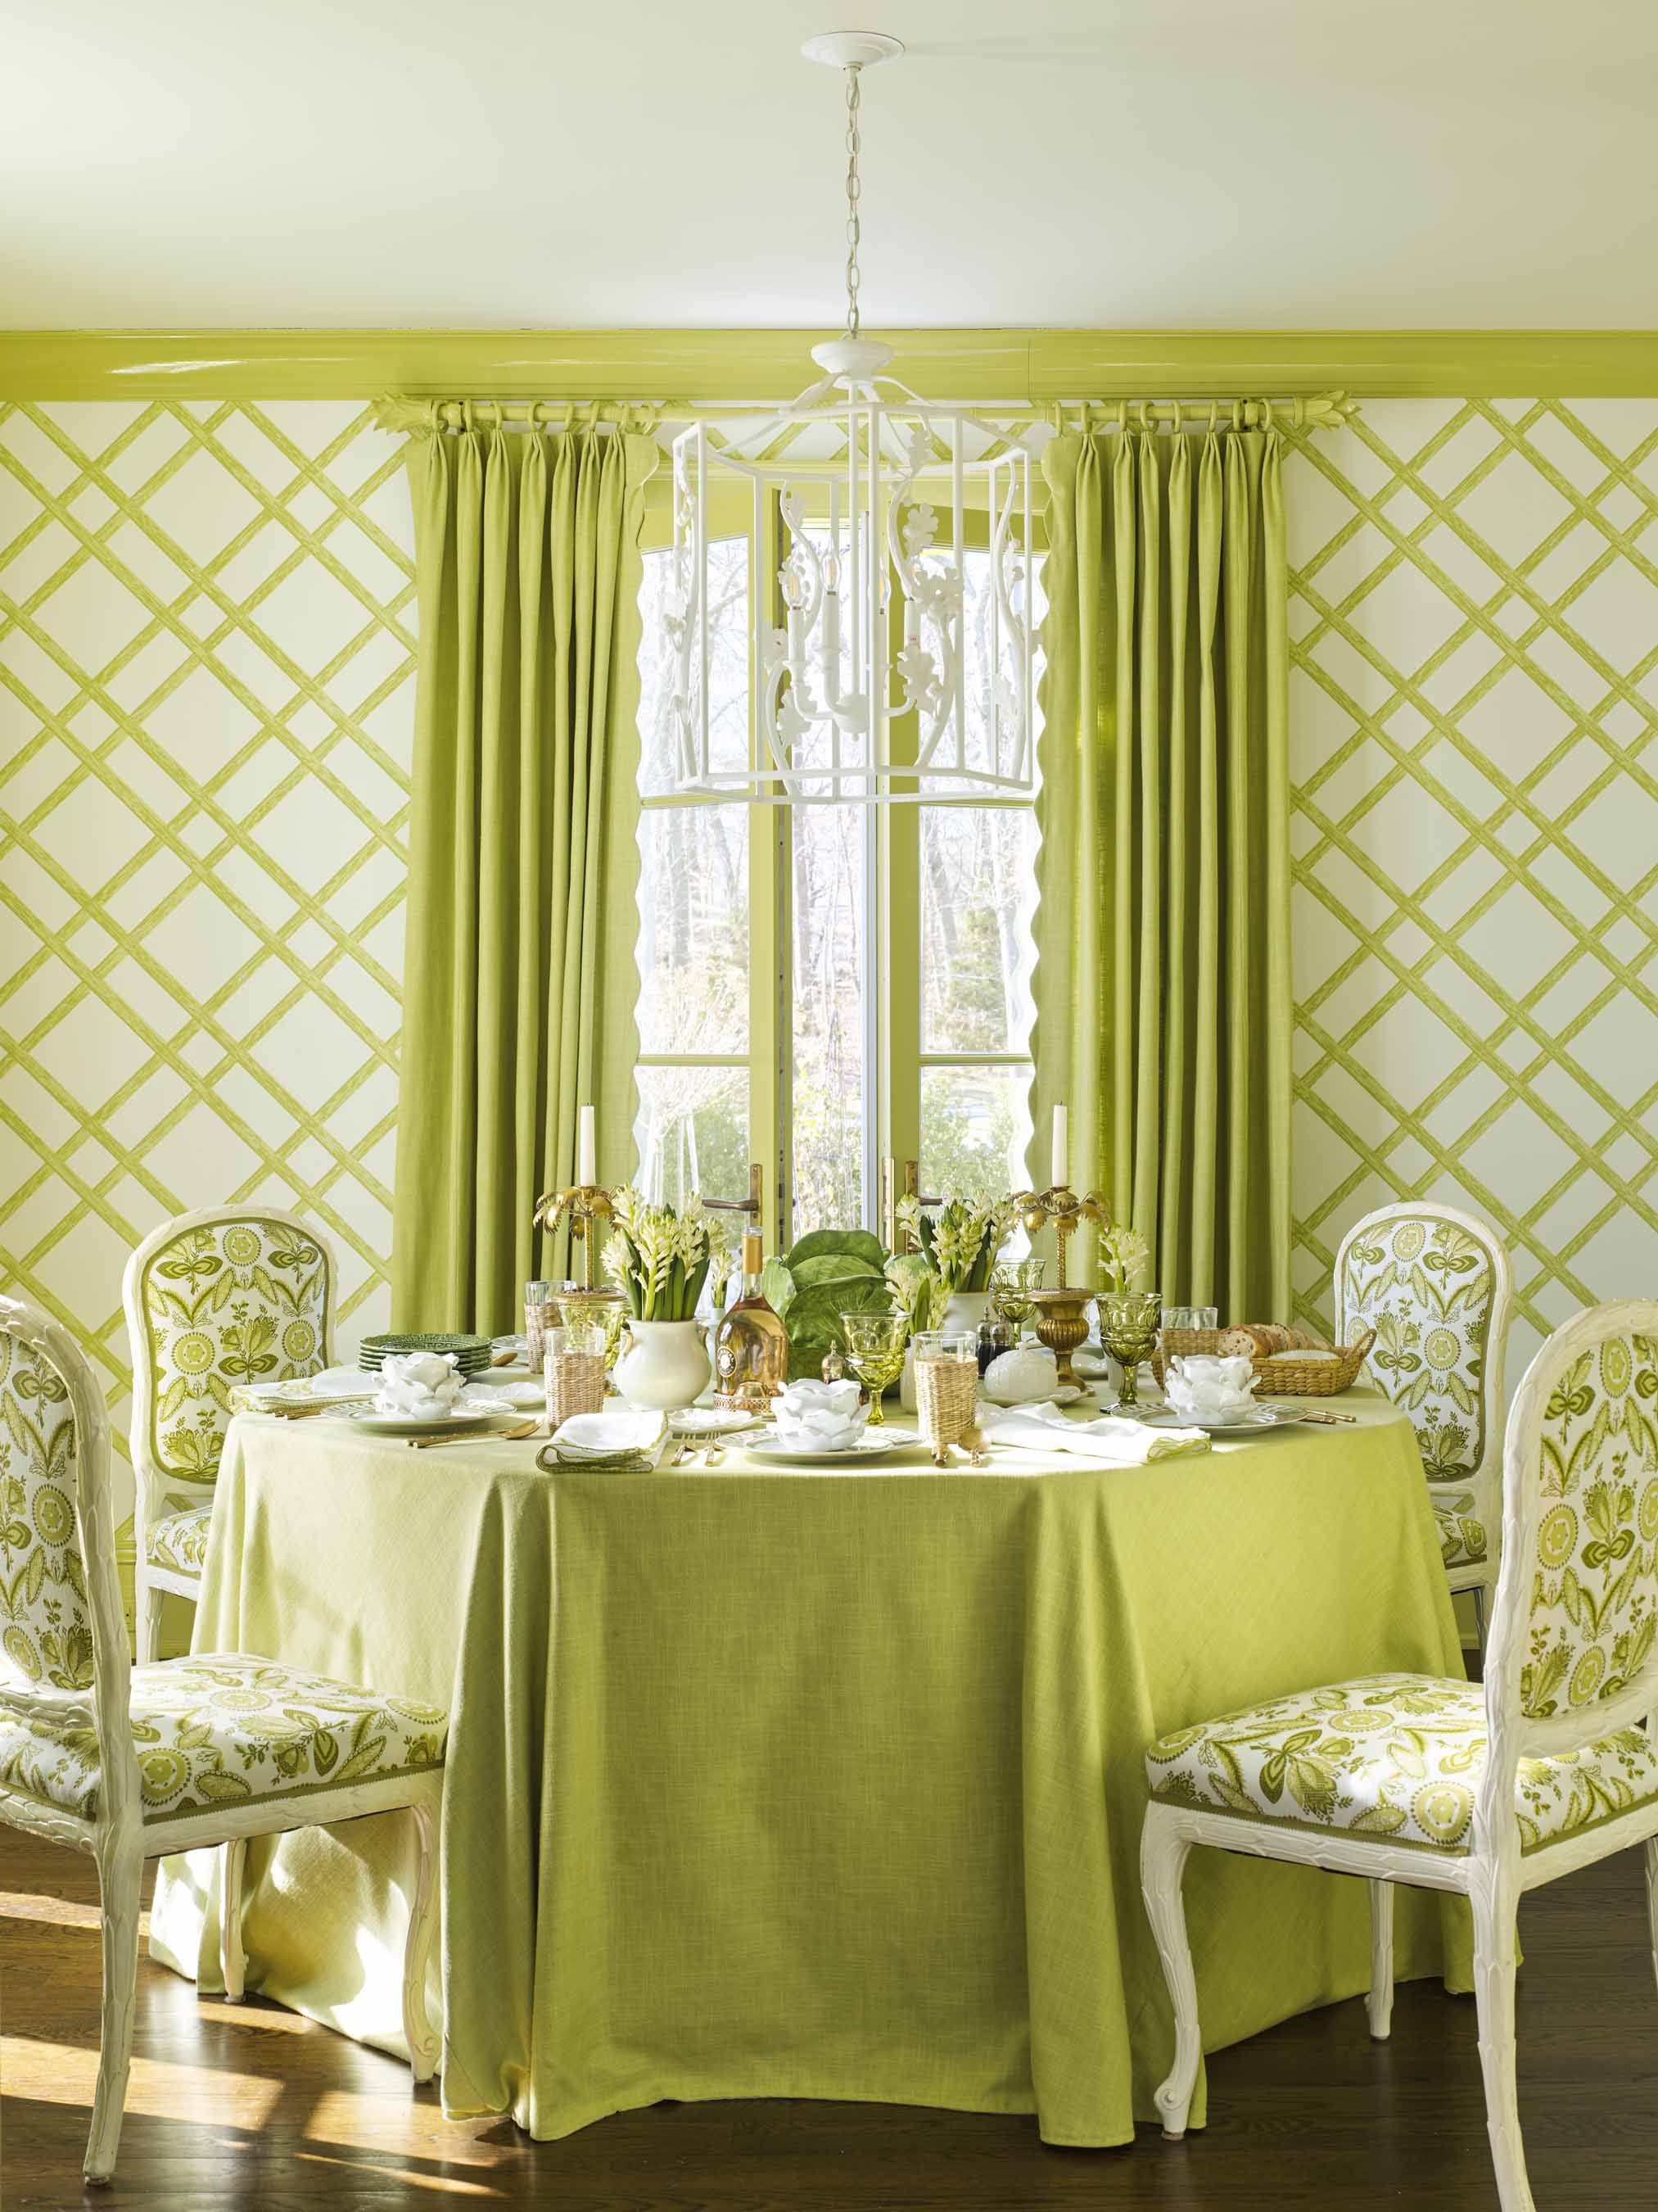 26+ Best Dining Room Ideas – Designer Dining Rooms & Decor